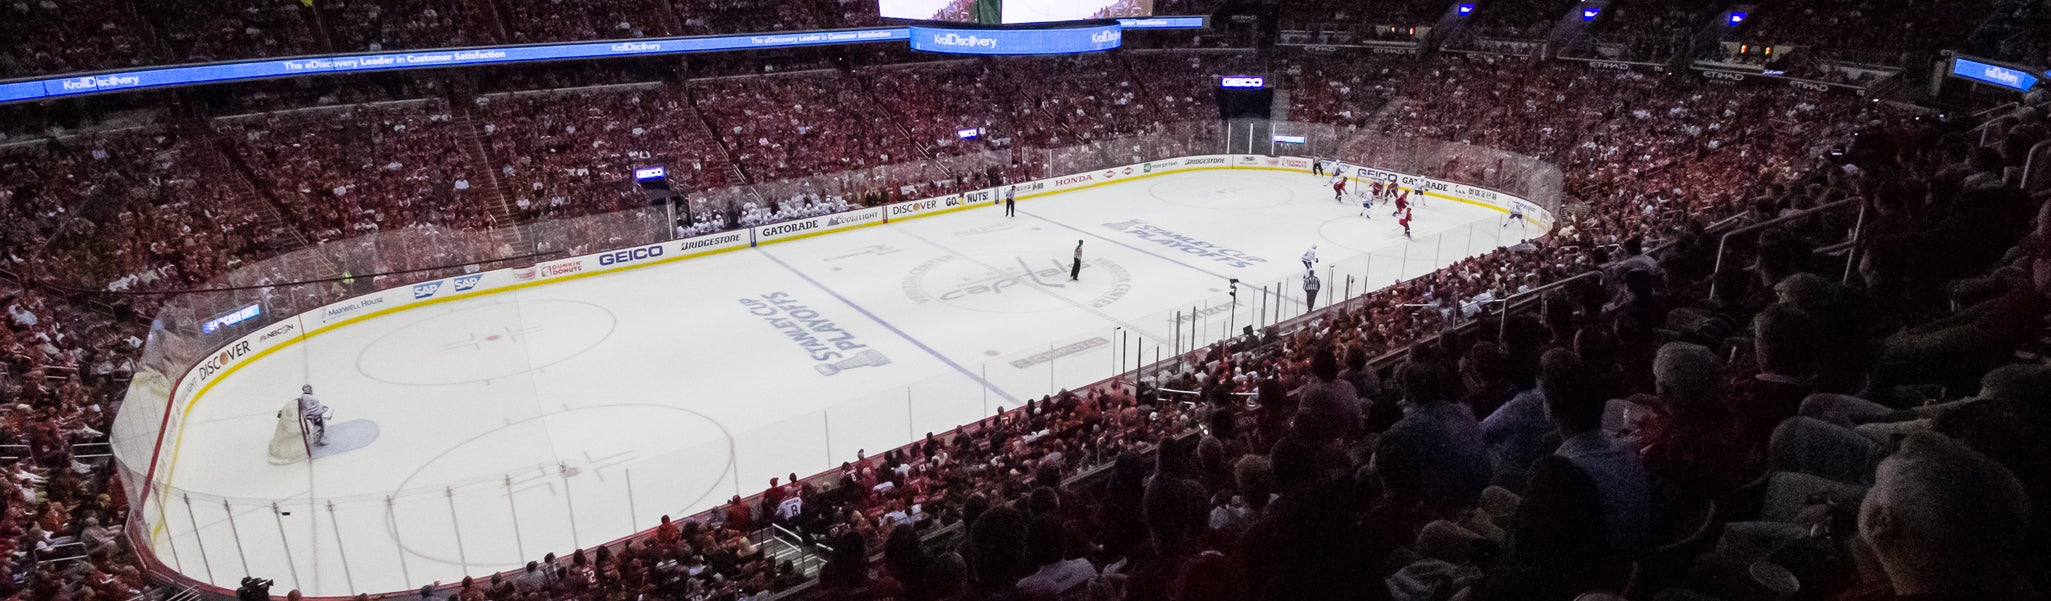 Seat view from Acela Level Corner 212 at Capital One Arena